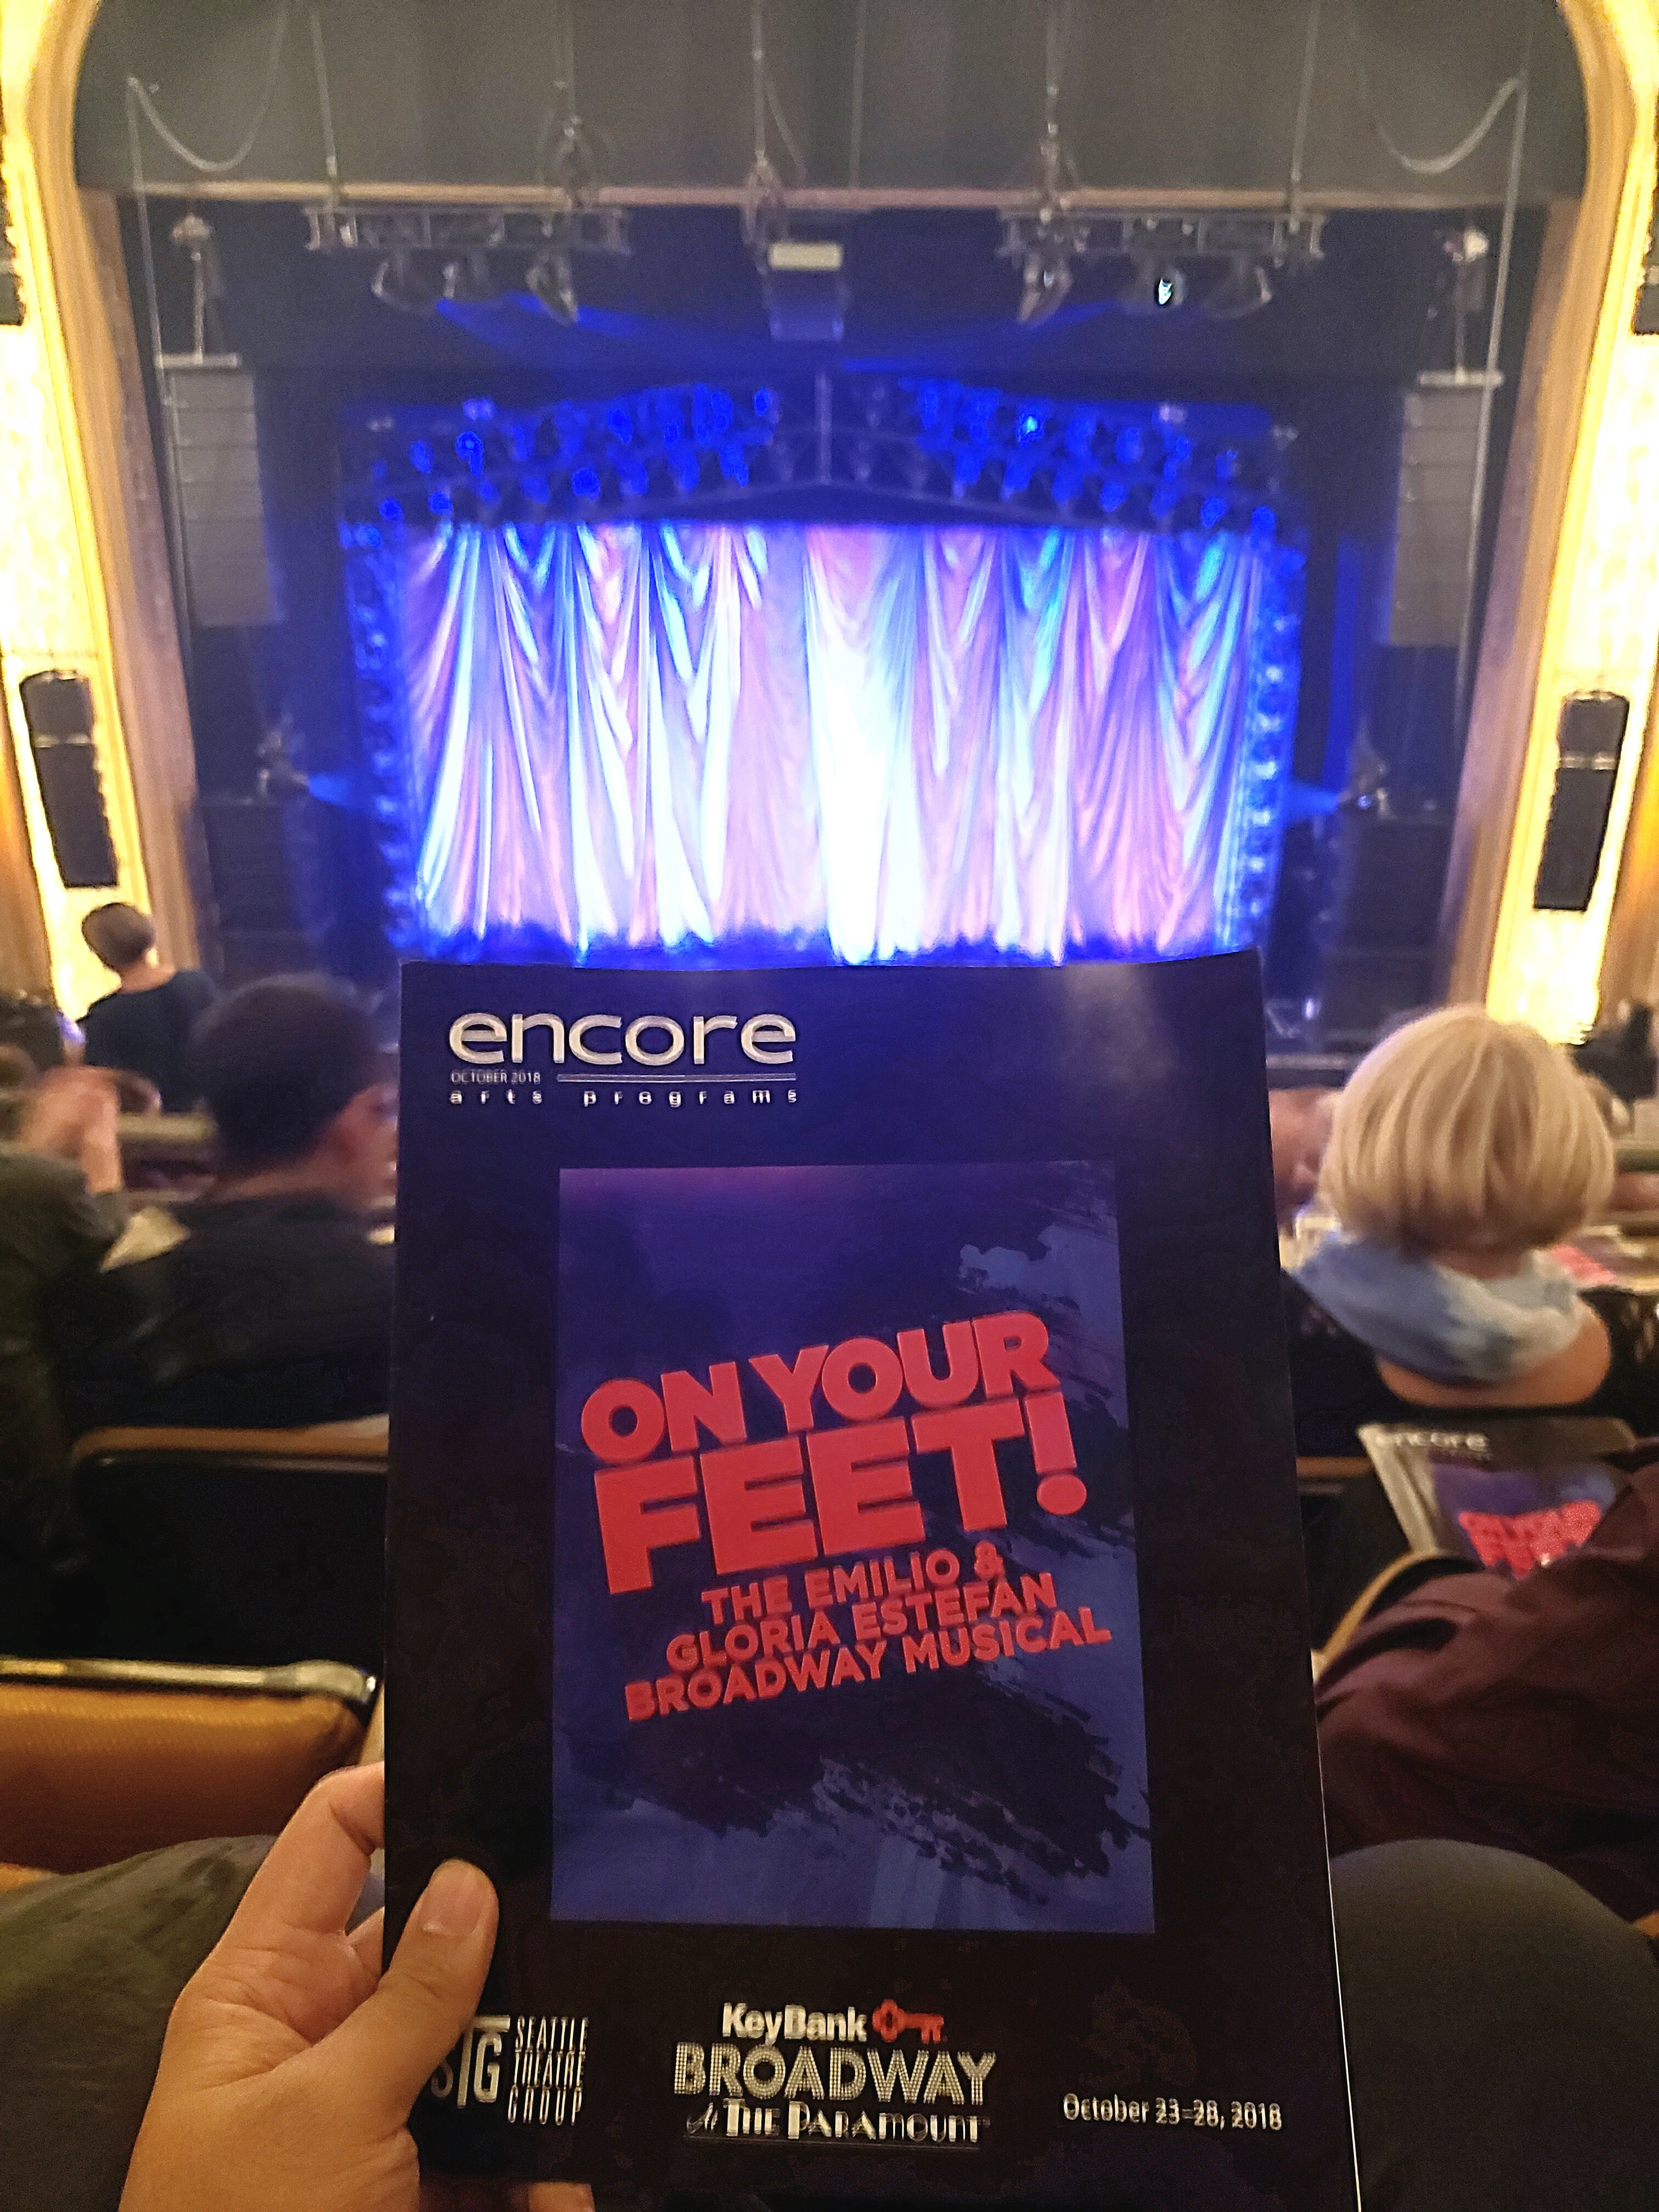 Watched ON YOUR FEET! The Musical. Stellar light show, mesmerizing choreography, golden voices, & hawt Emilio Estefan actor (Ektor Rivera). But like many Paramount Theatre shows, the volume was too loud.